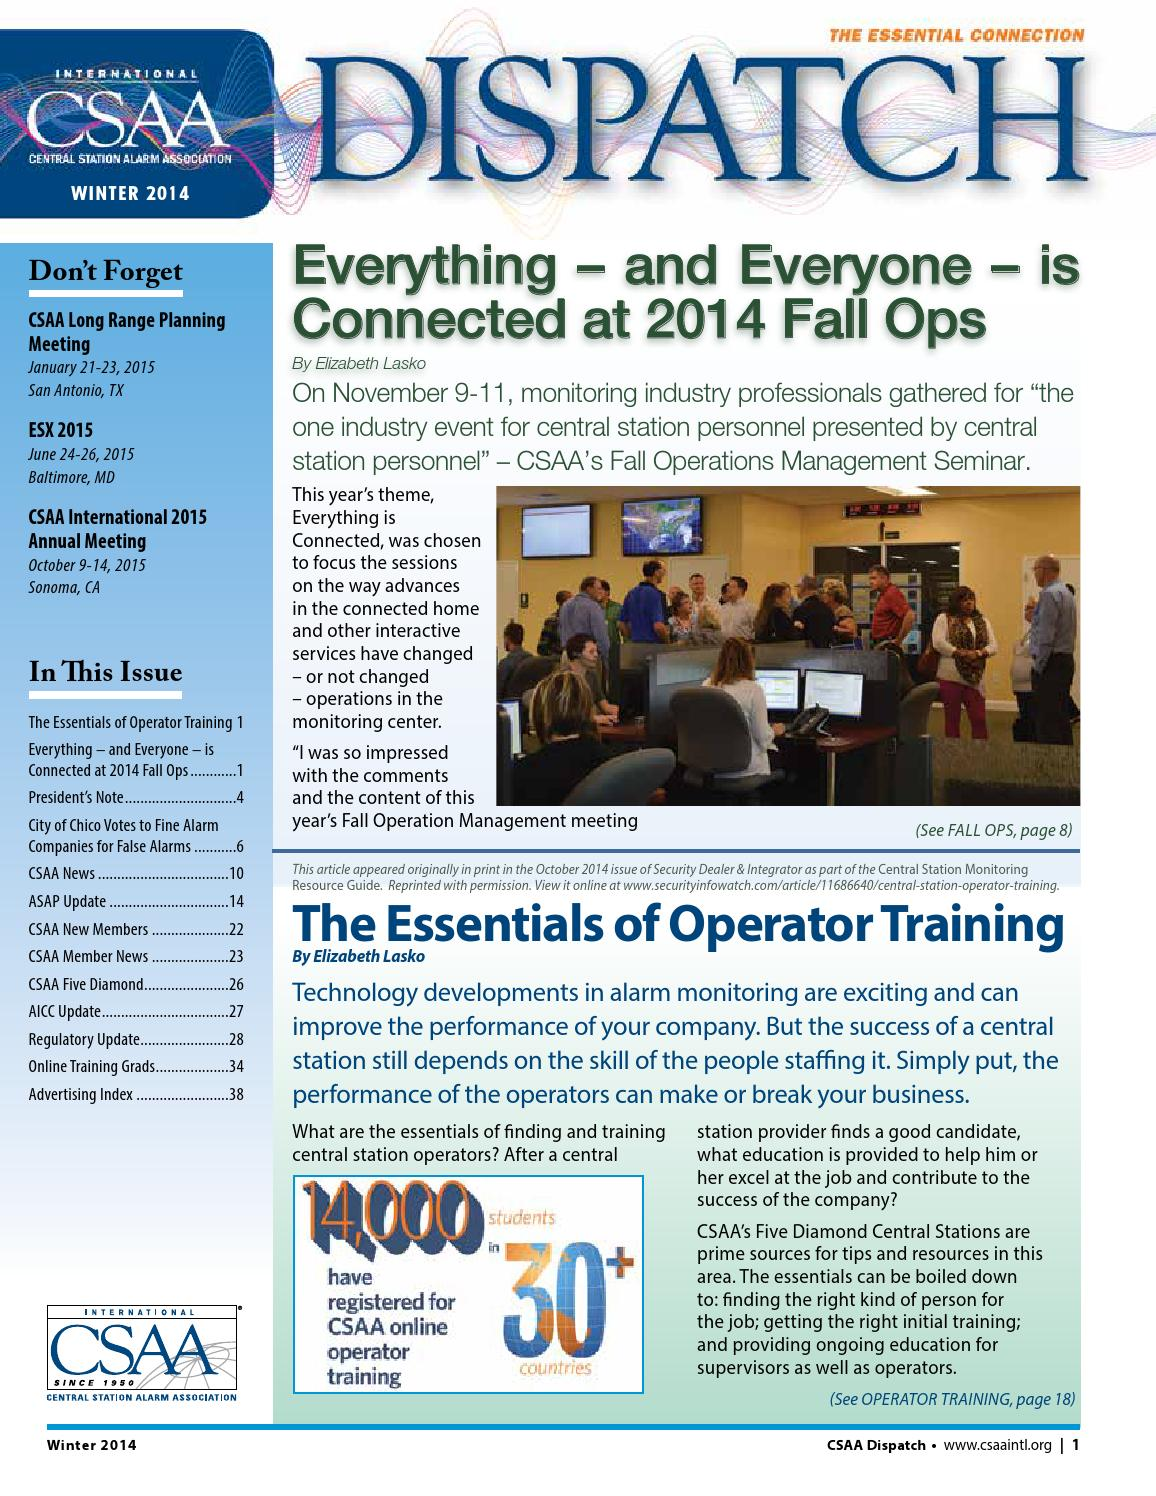 CSAA Dispatch Winter 2014 online version by The Monitoring